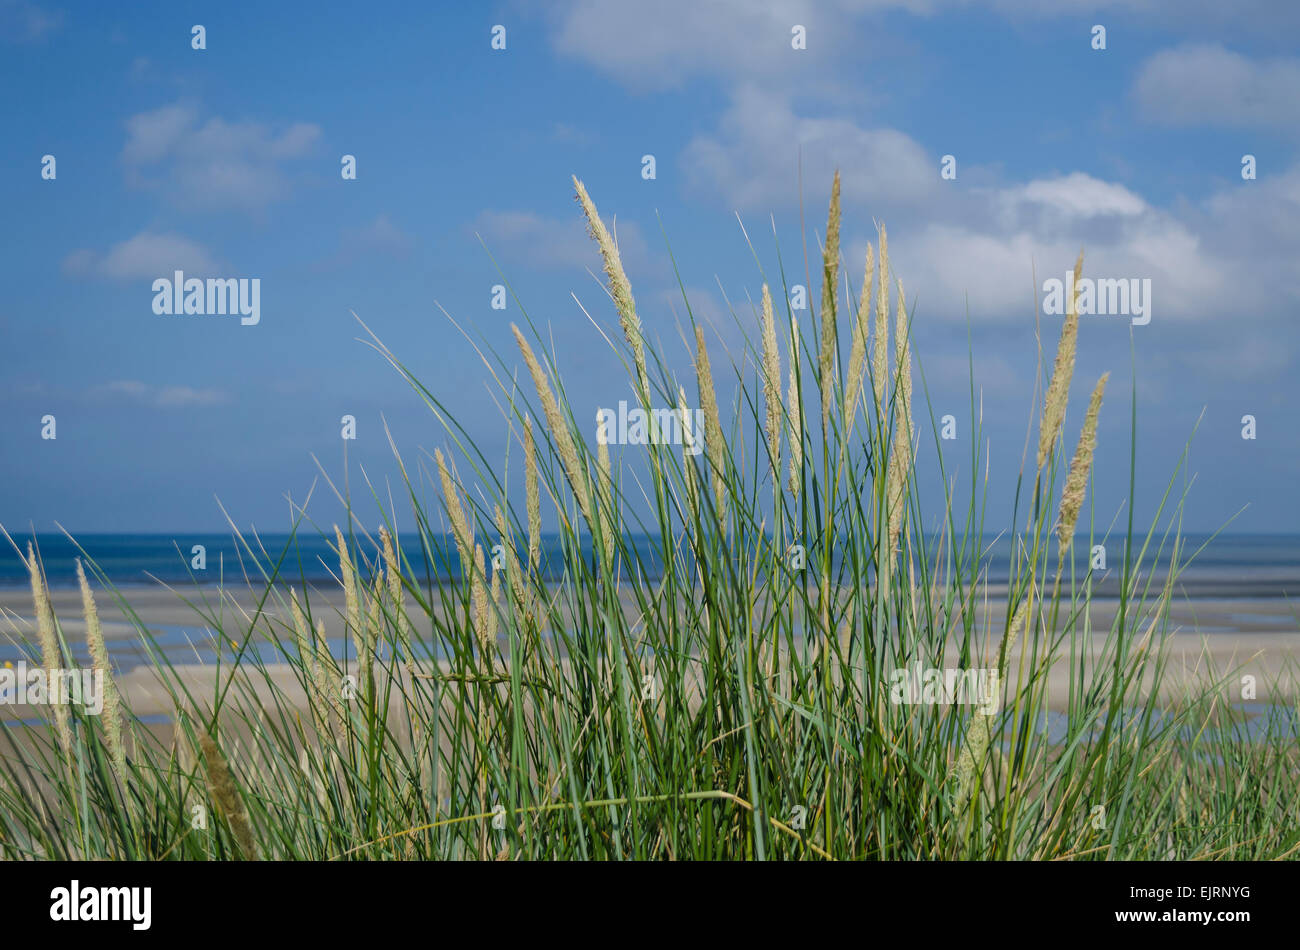 Close-up detail of marram grass with the beach and sea in the background - Stock Image